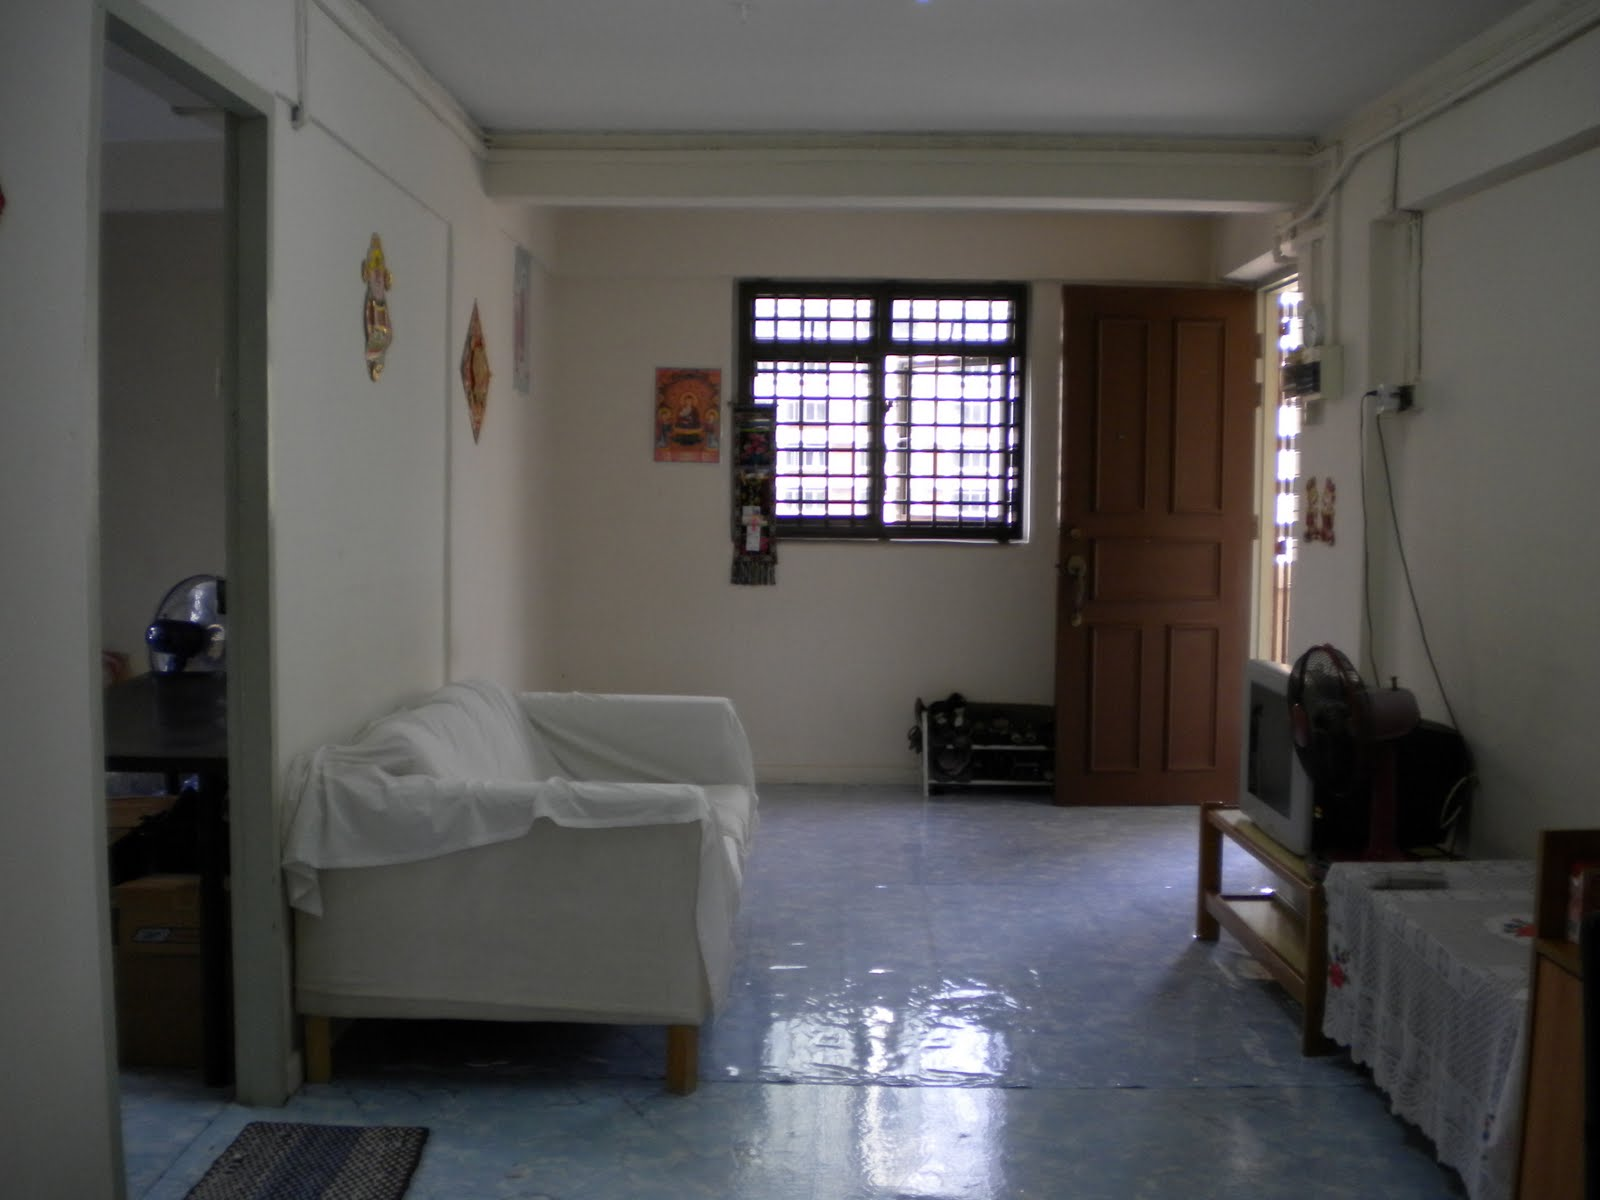 Living in hdb hunting for a 3 room corner hdb flat at toa for 4 room flat renovation design